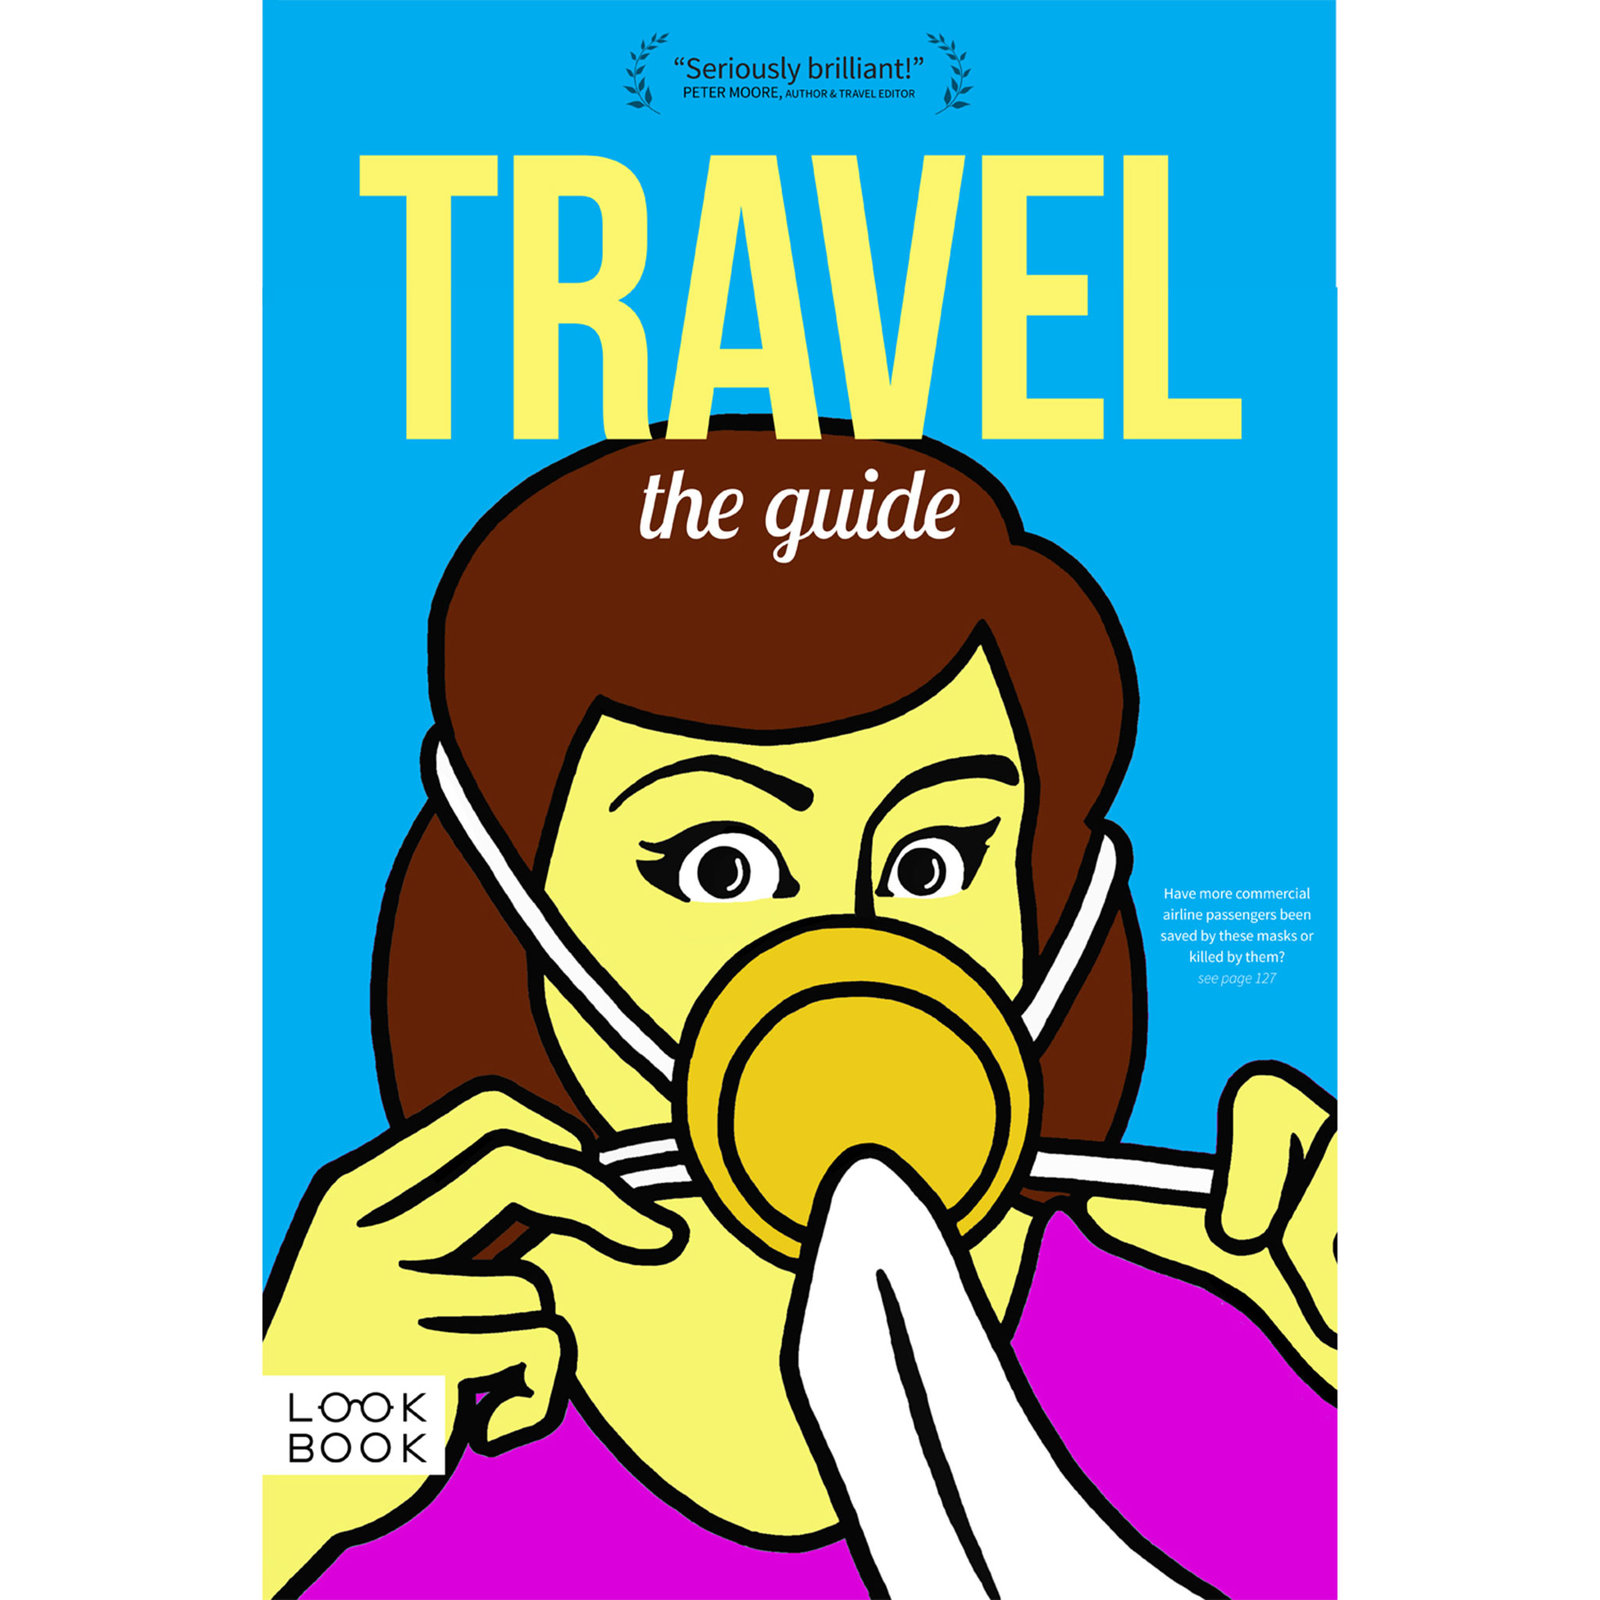 Travel - The Guide, cover